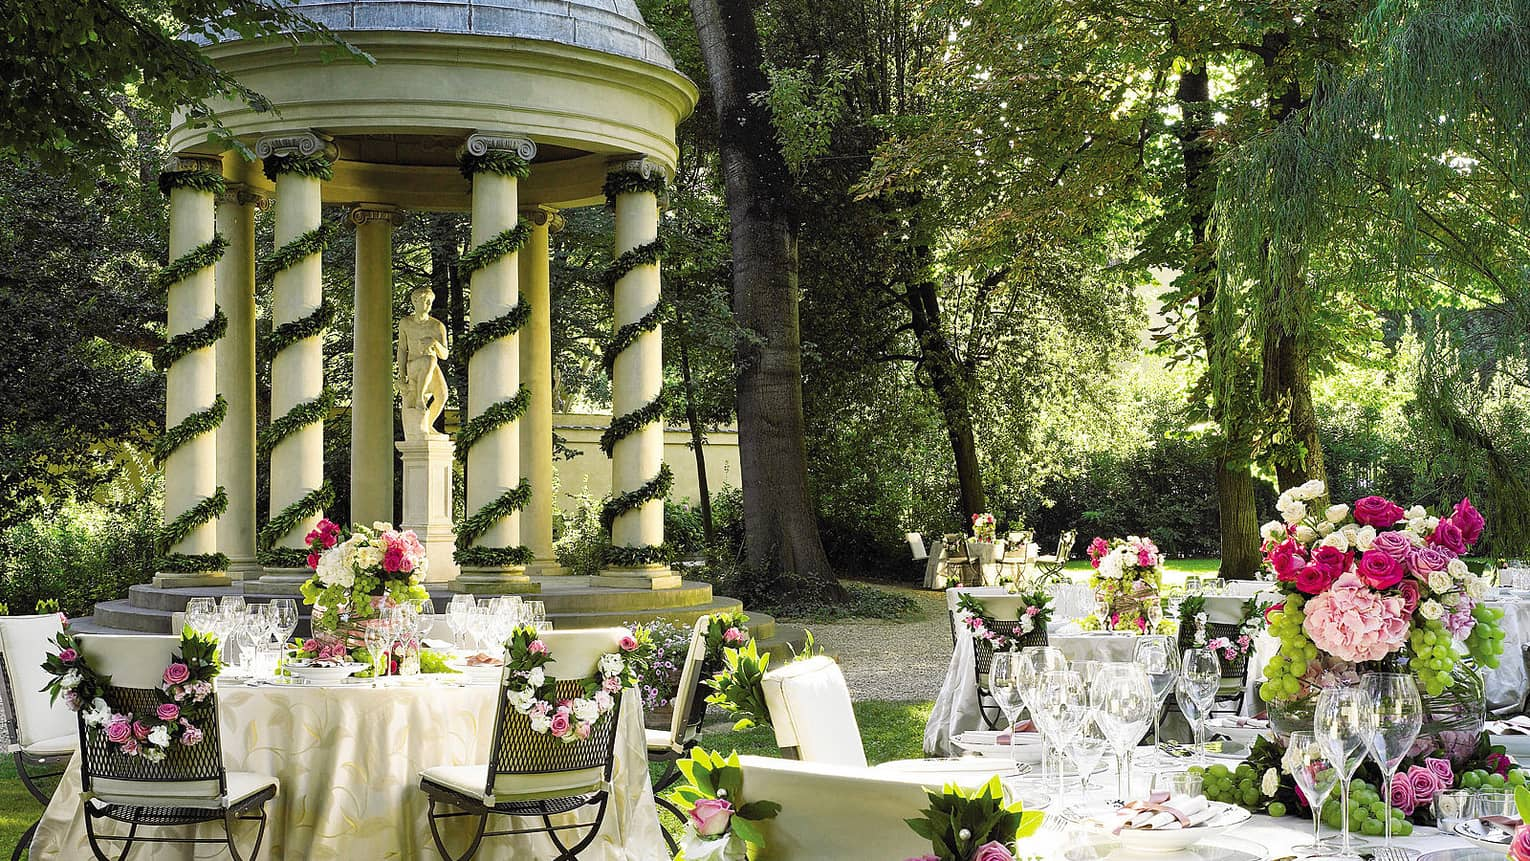 Garden reception, round, flower covered banquet tables by gazebo with white pillars